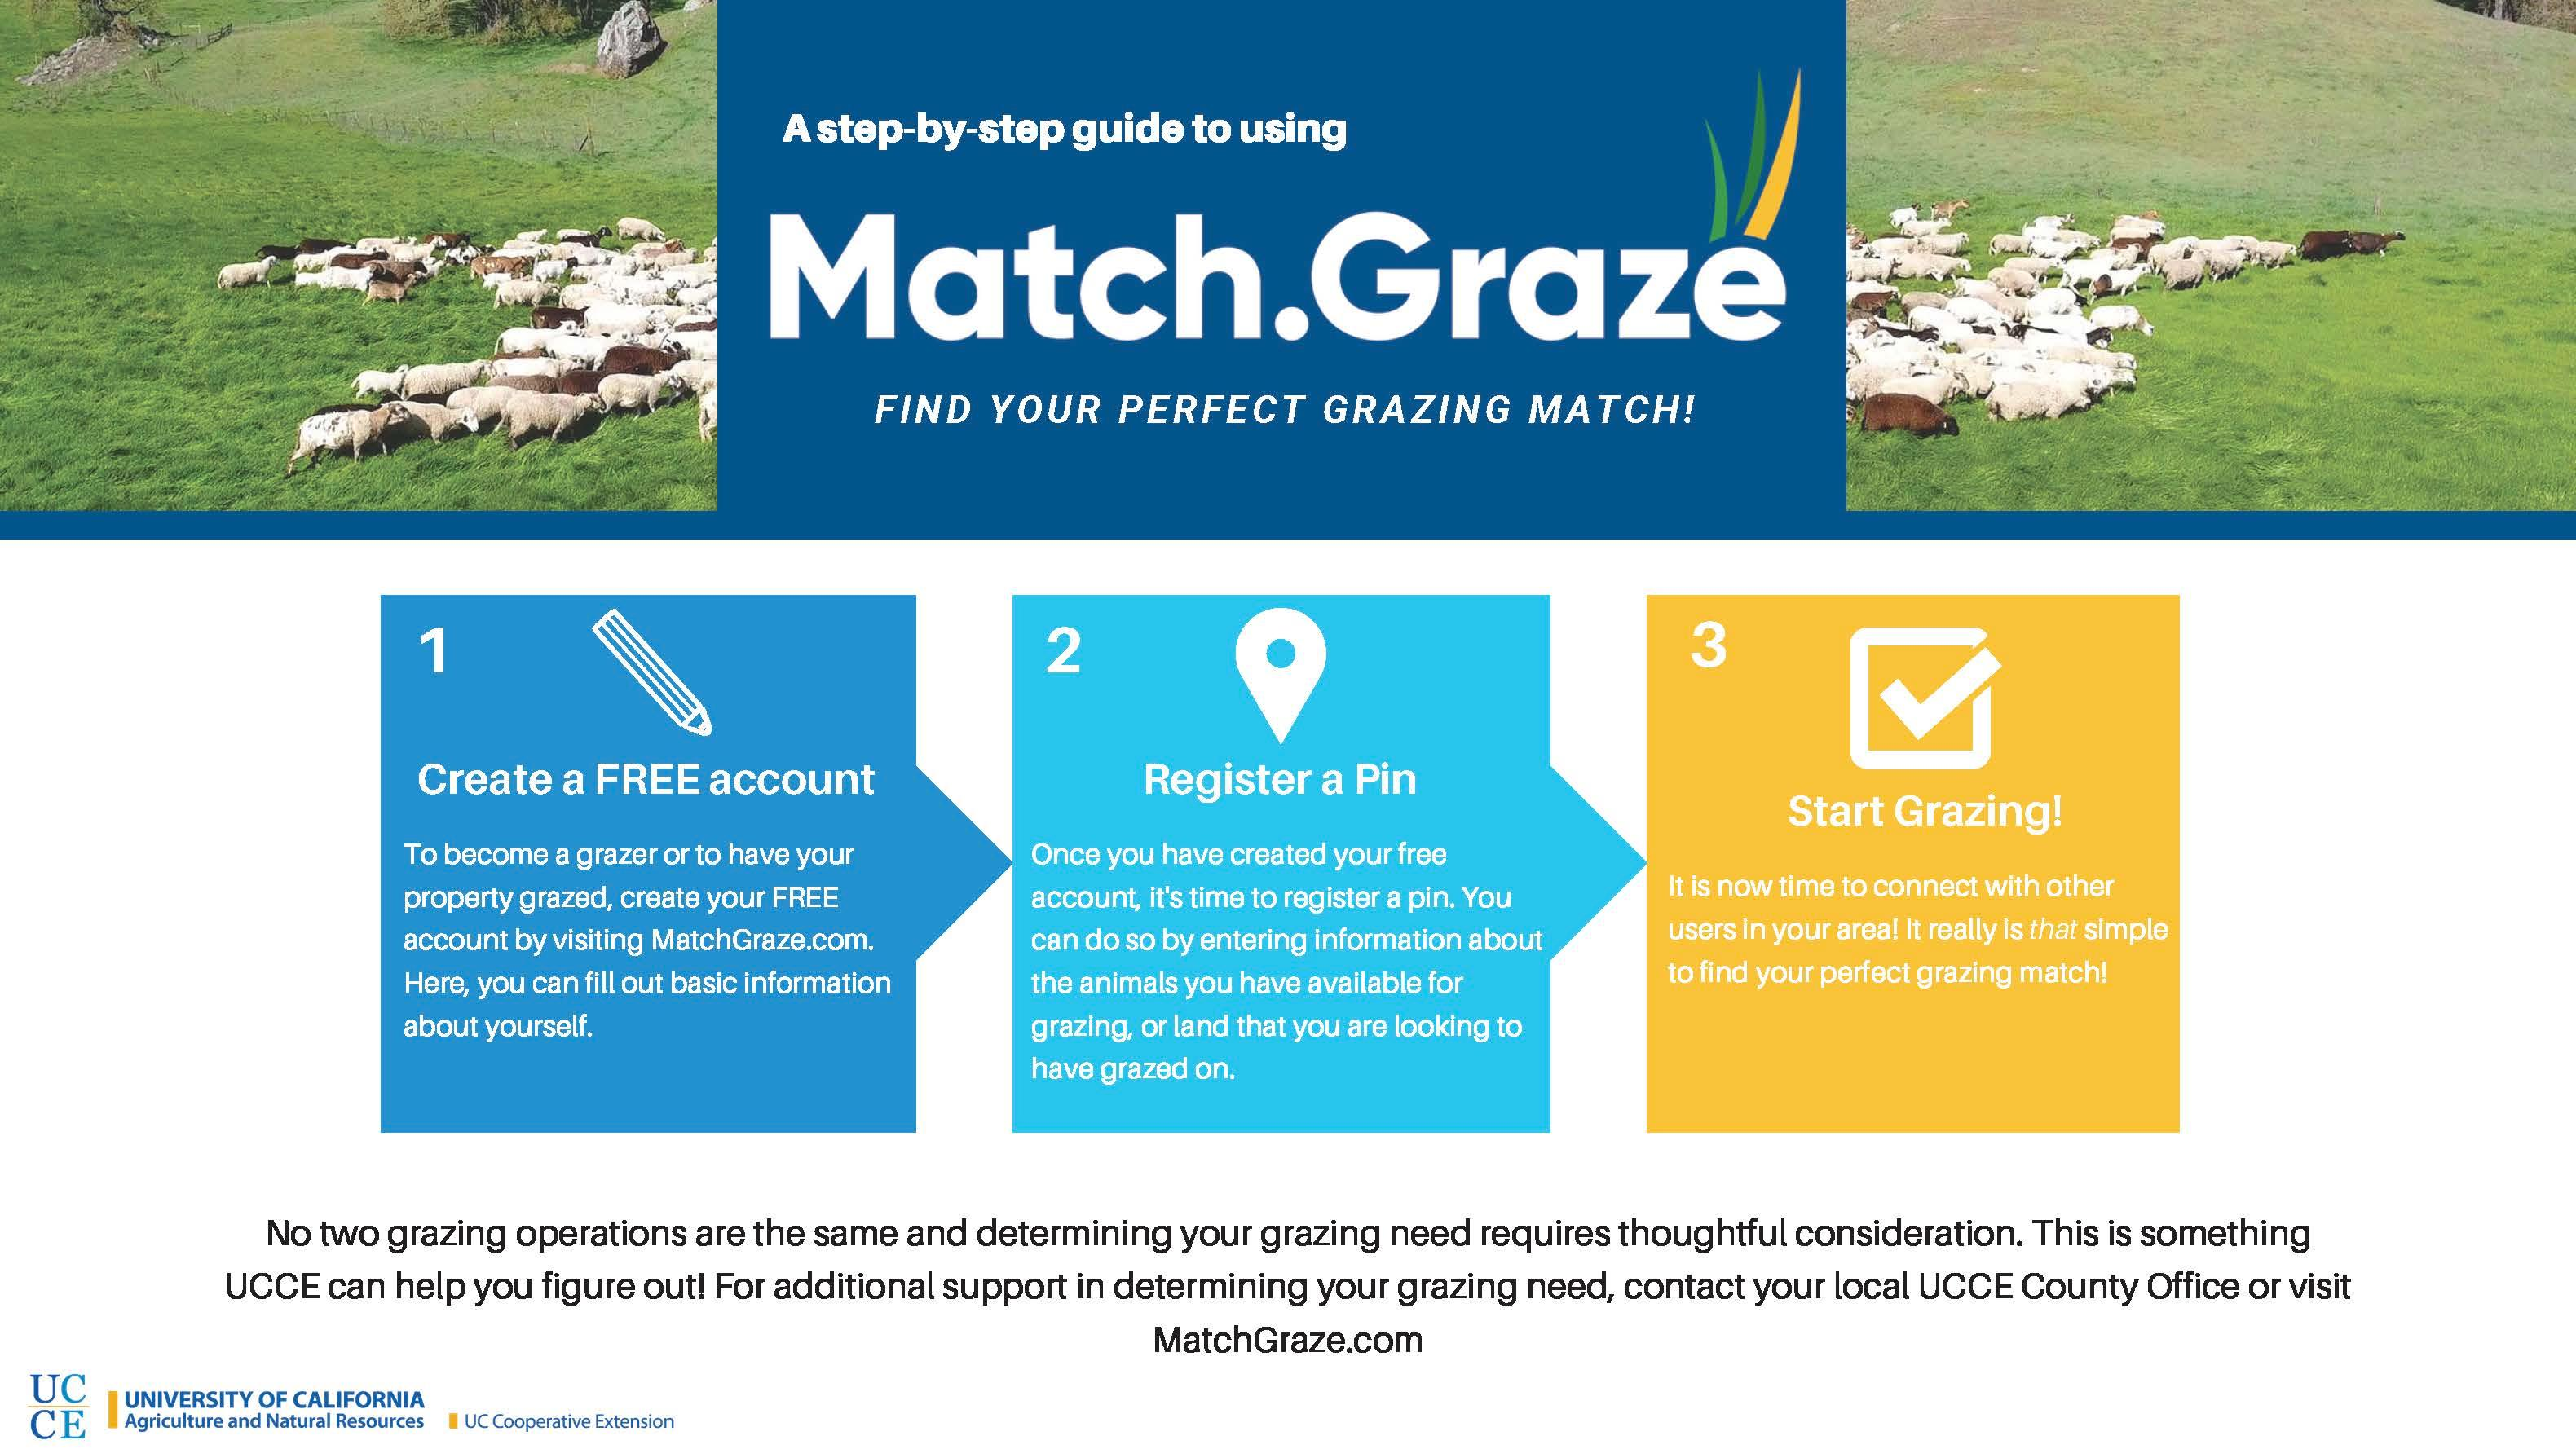 Match.Graze Step-by-Step